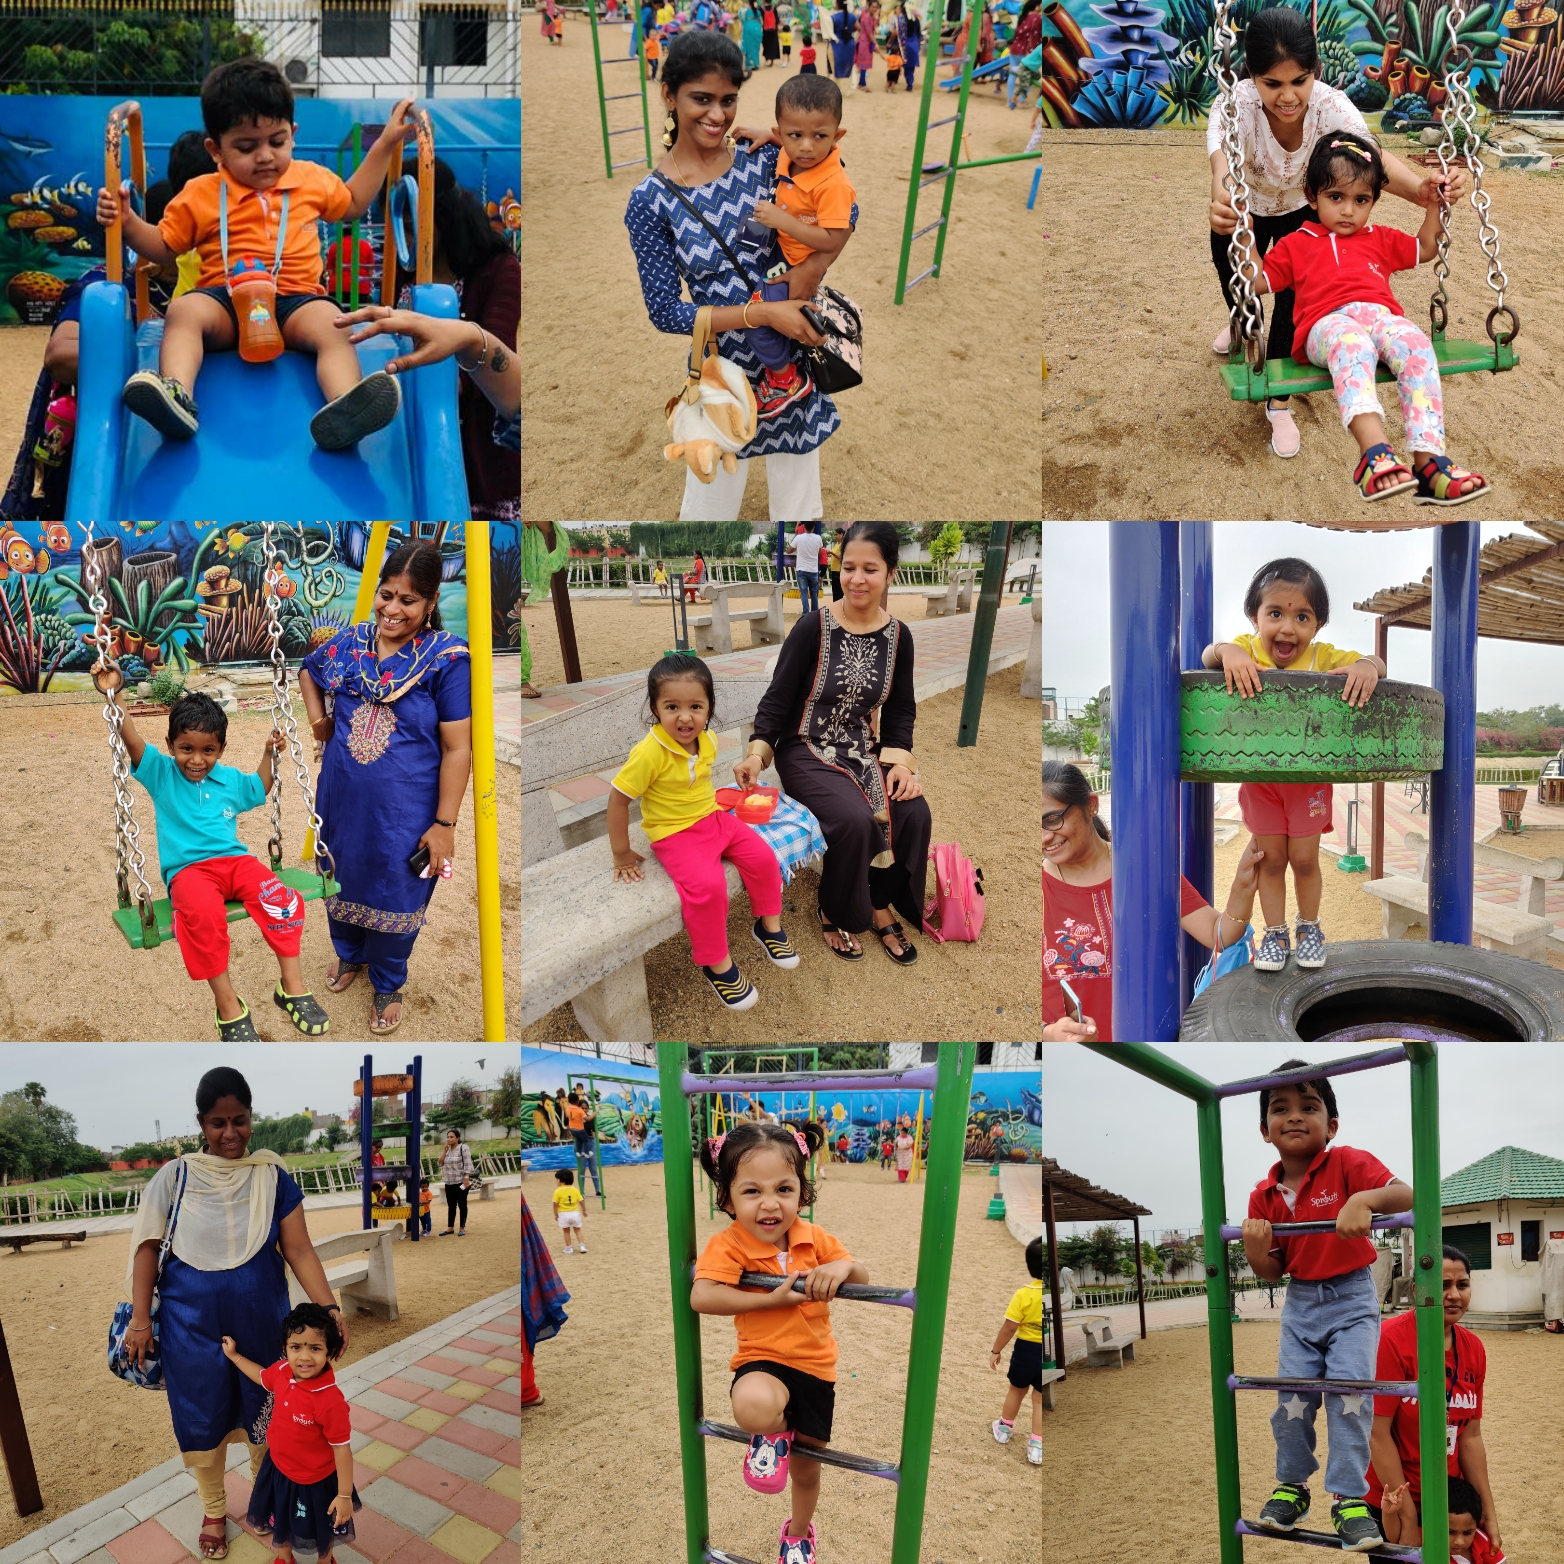 Play time at Eco Park